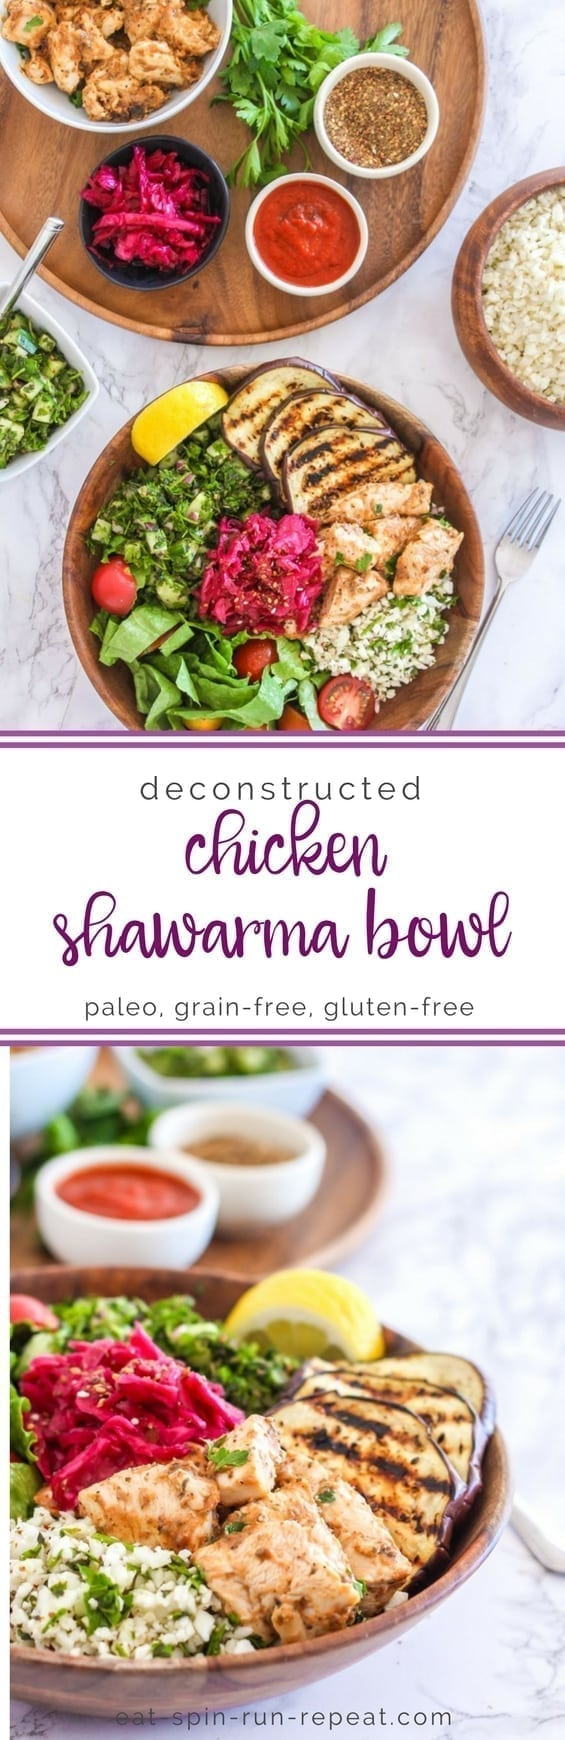 Chicken Shawarma Bowls - paleo, grain-free and gluten-free || Eat Spin Run Repeat